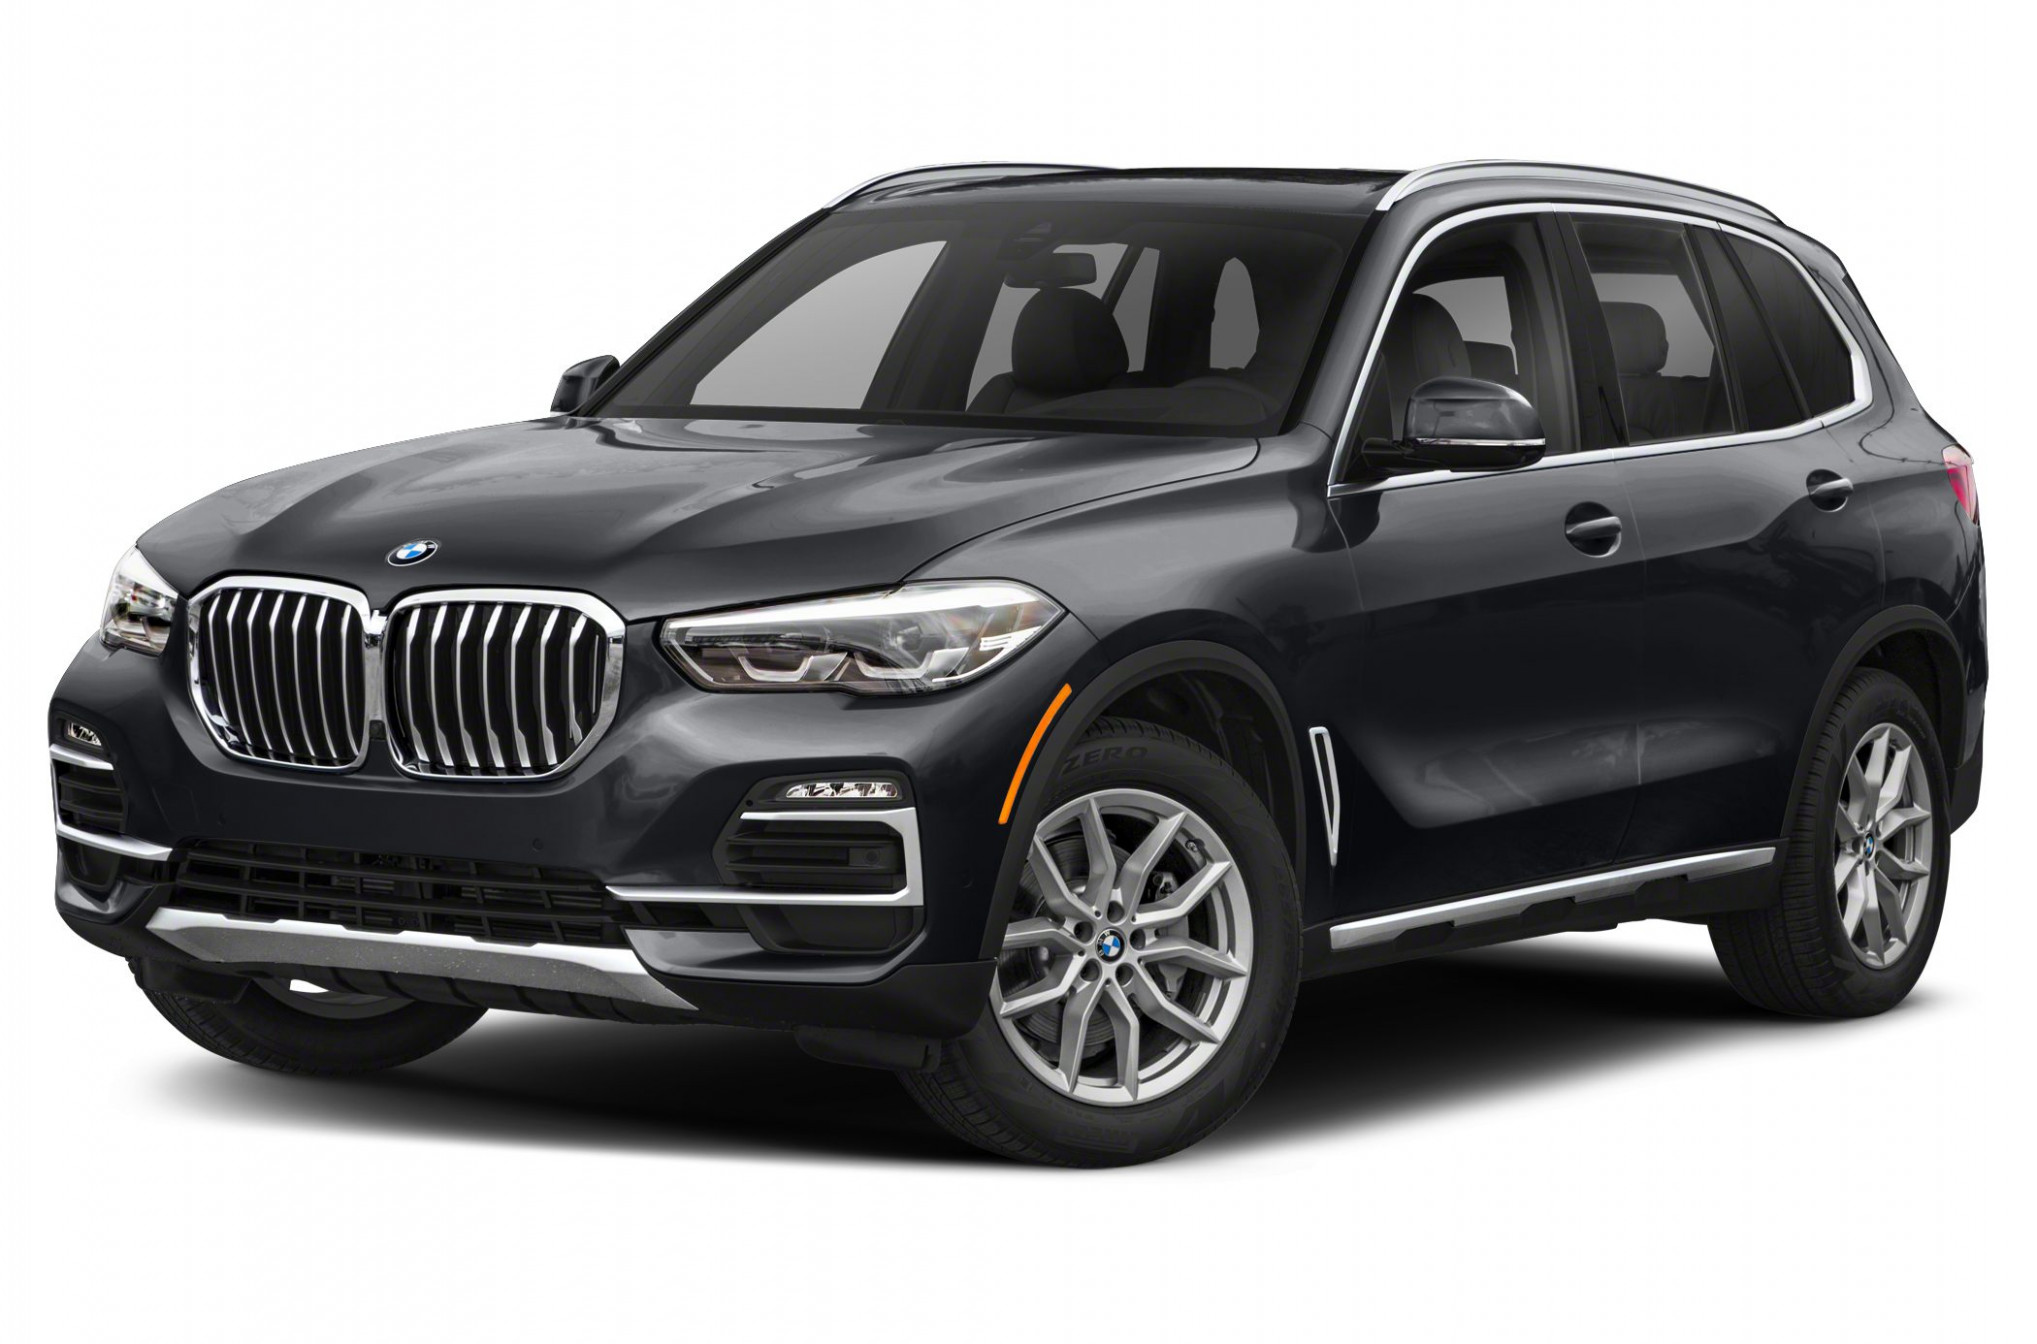 11 BMW X11 xDrive11i 11dr All-wheel Drive Sports Activity Vehicle Specs and  Prices